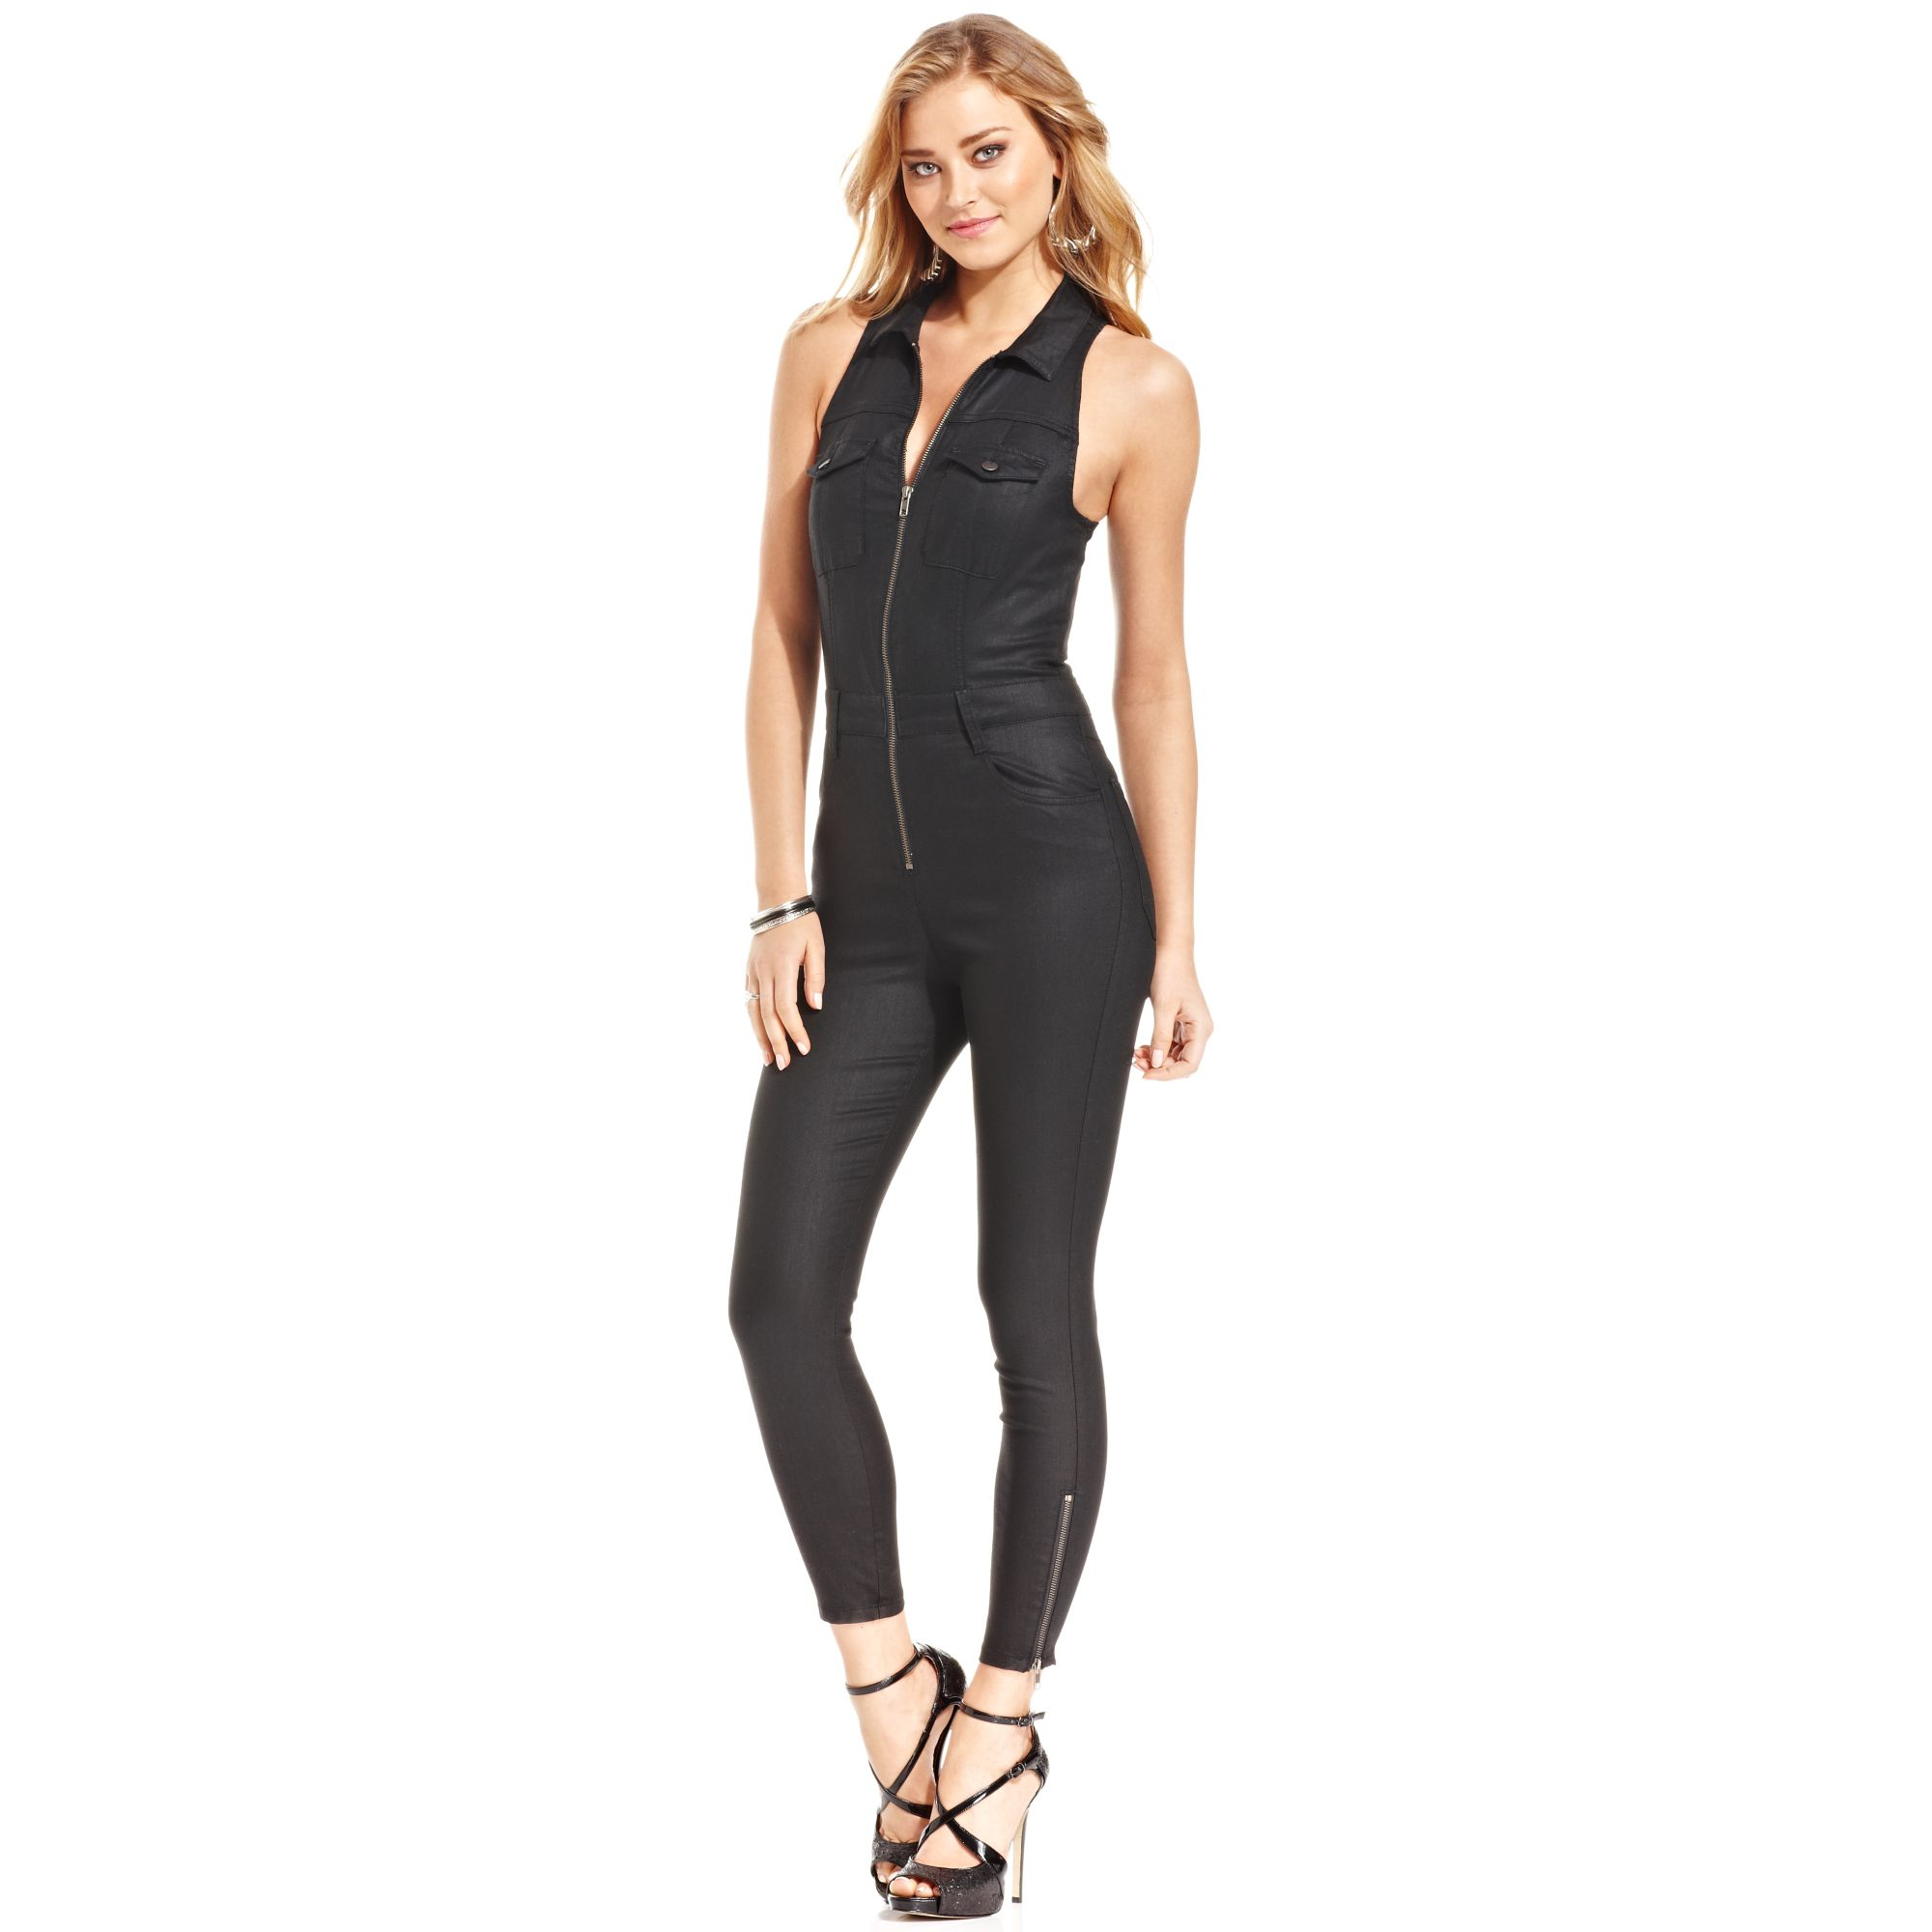 7247d5337043 Lyst - Guess Cara Denim Jumpsuit in Black